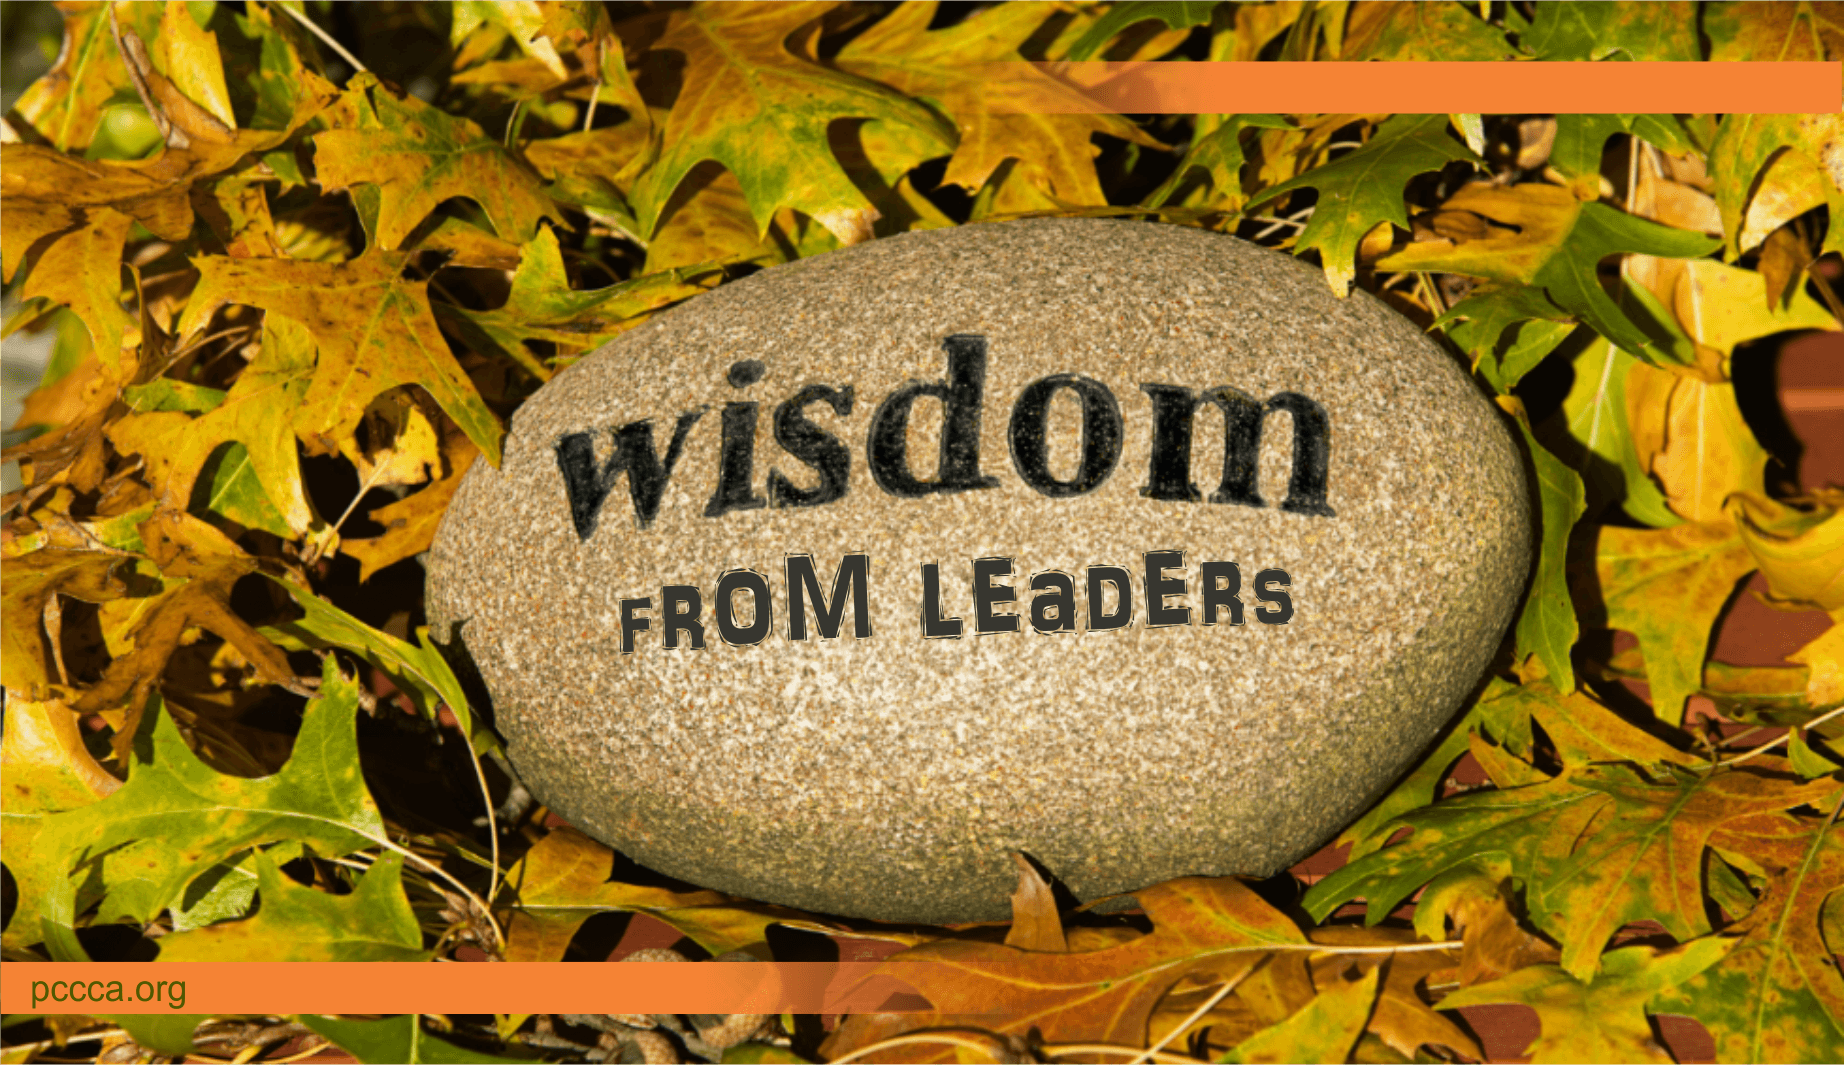 wisdom from leaders http://pccca.org